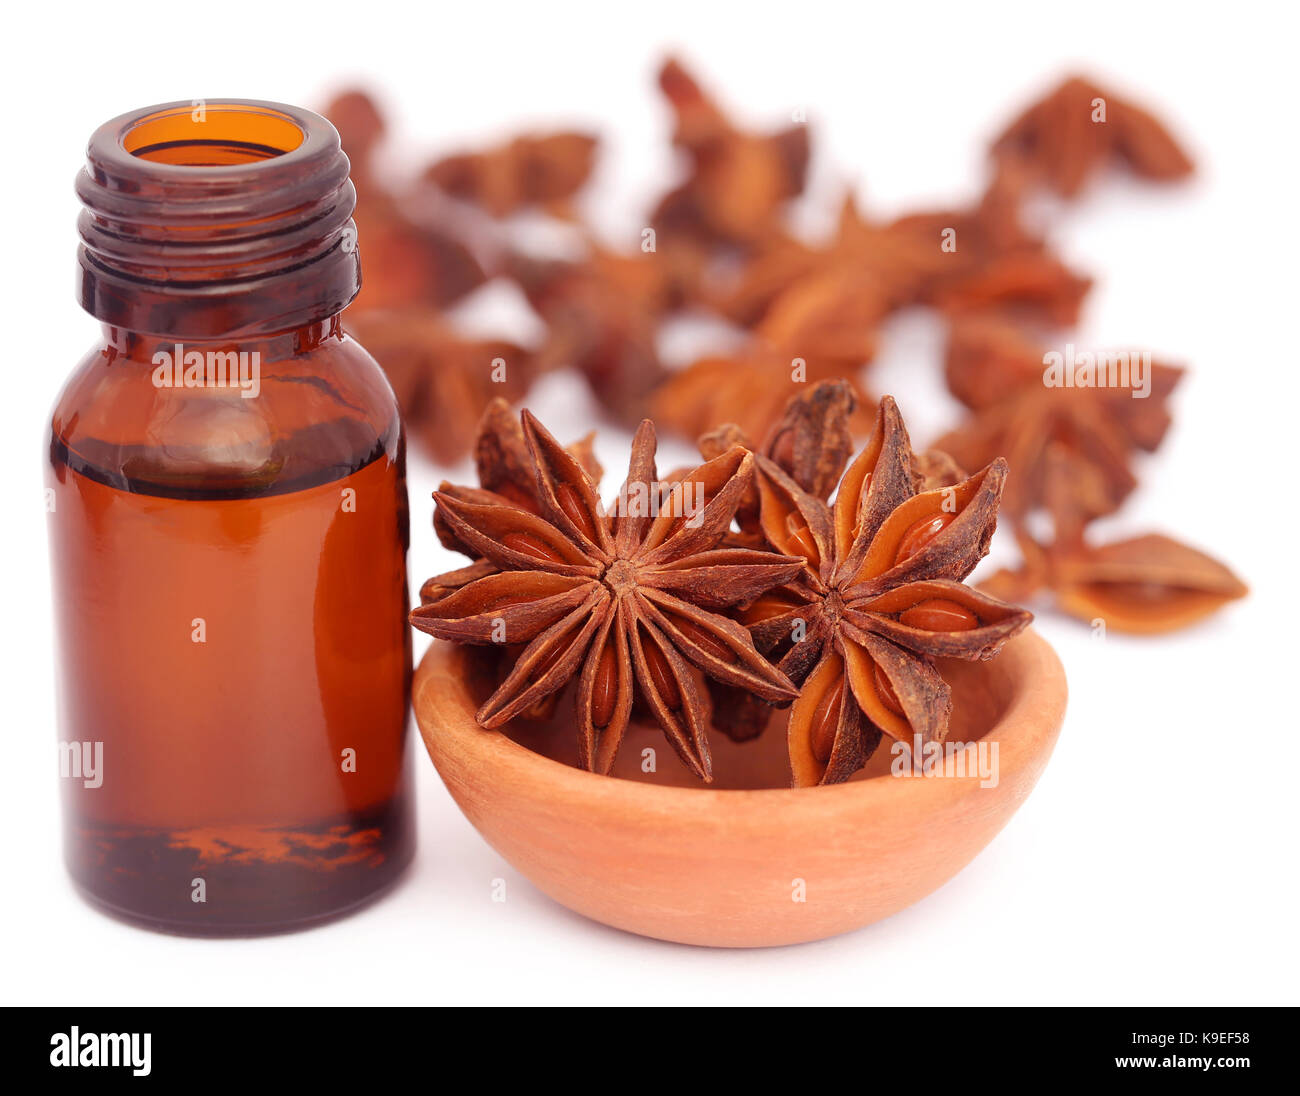 Some aromatic cinnamon with star anise and essential oil in a bottle - Stock Image